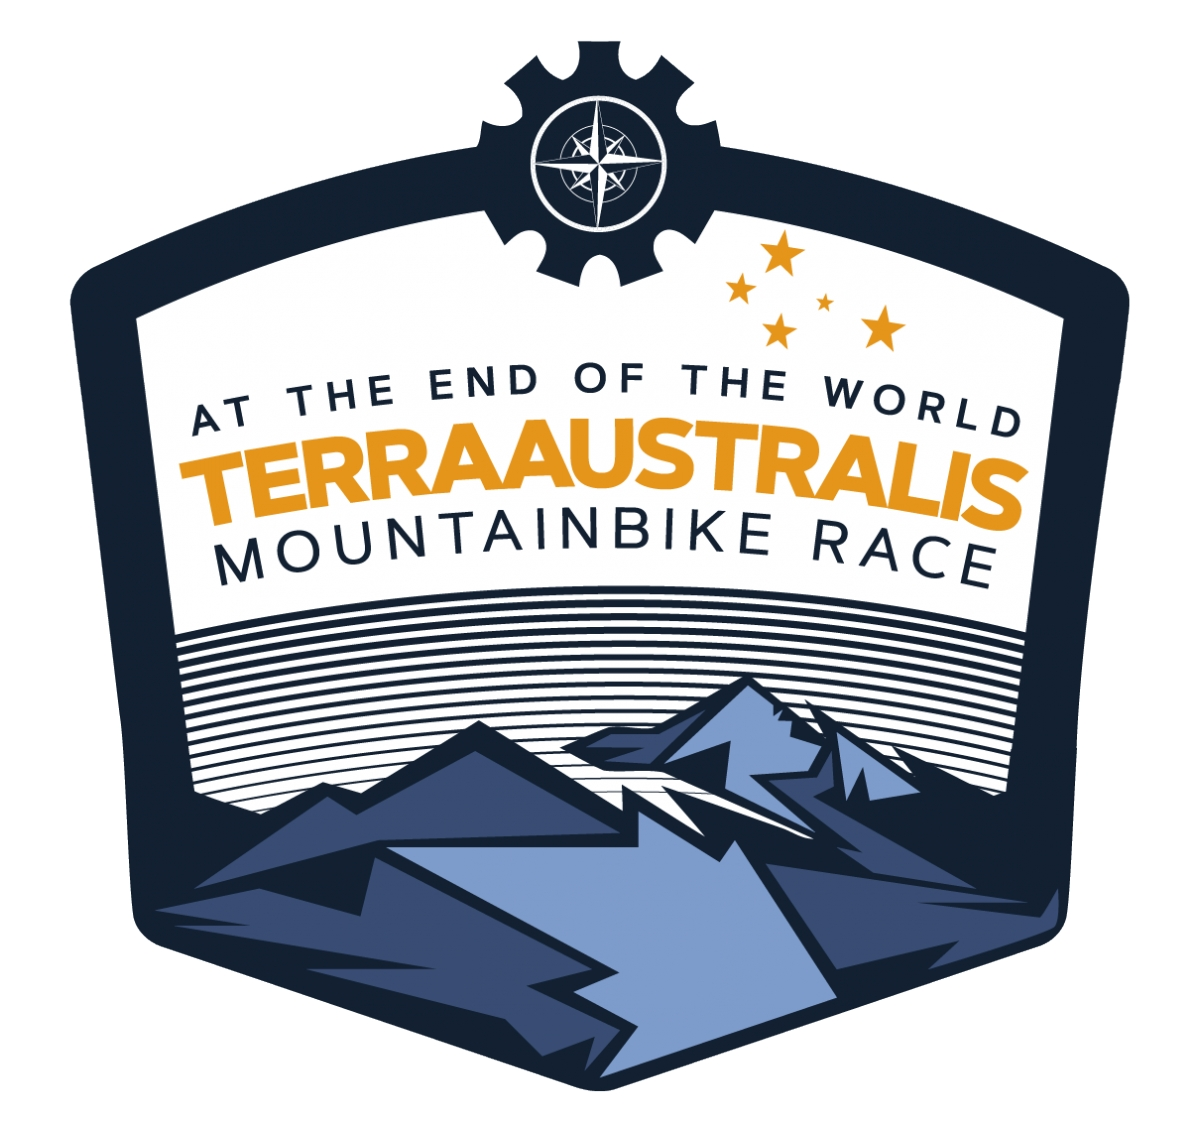 TERRA AUSTRALIS MOUNTAINBIKE RACE